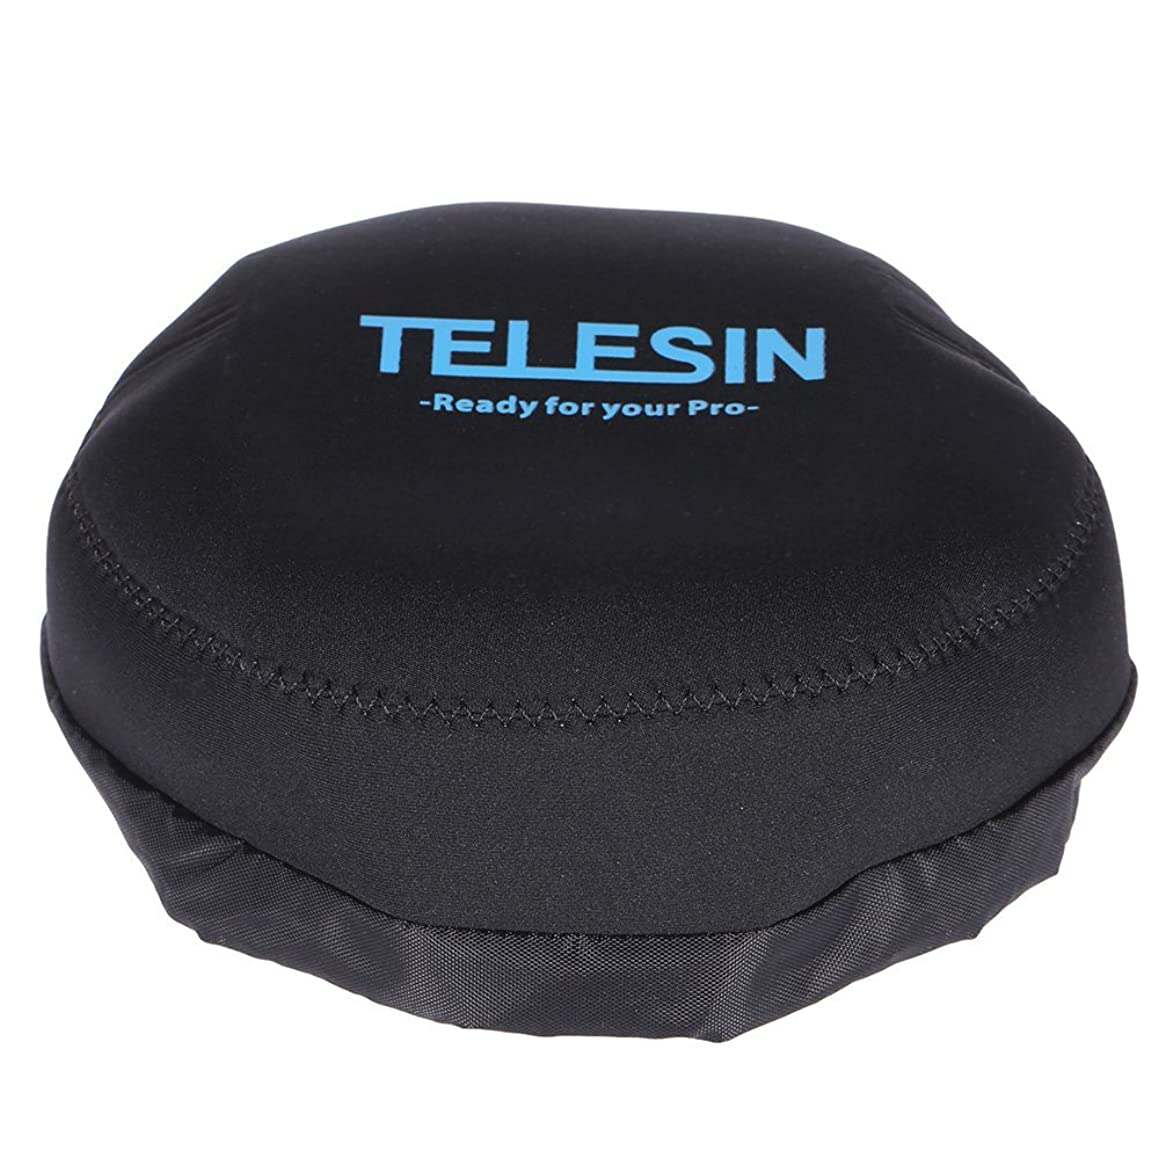 TELESIN Dome Port Protective Cover Hood for TELESIN 6in Dome Port for Gopro / Xiaomi Yi Sports Camera